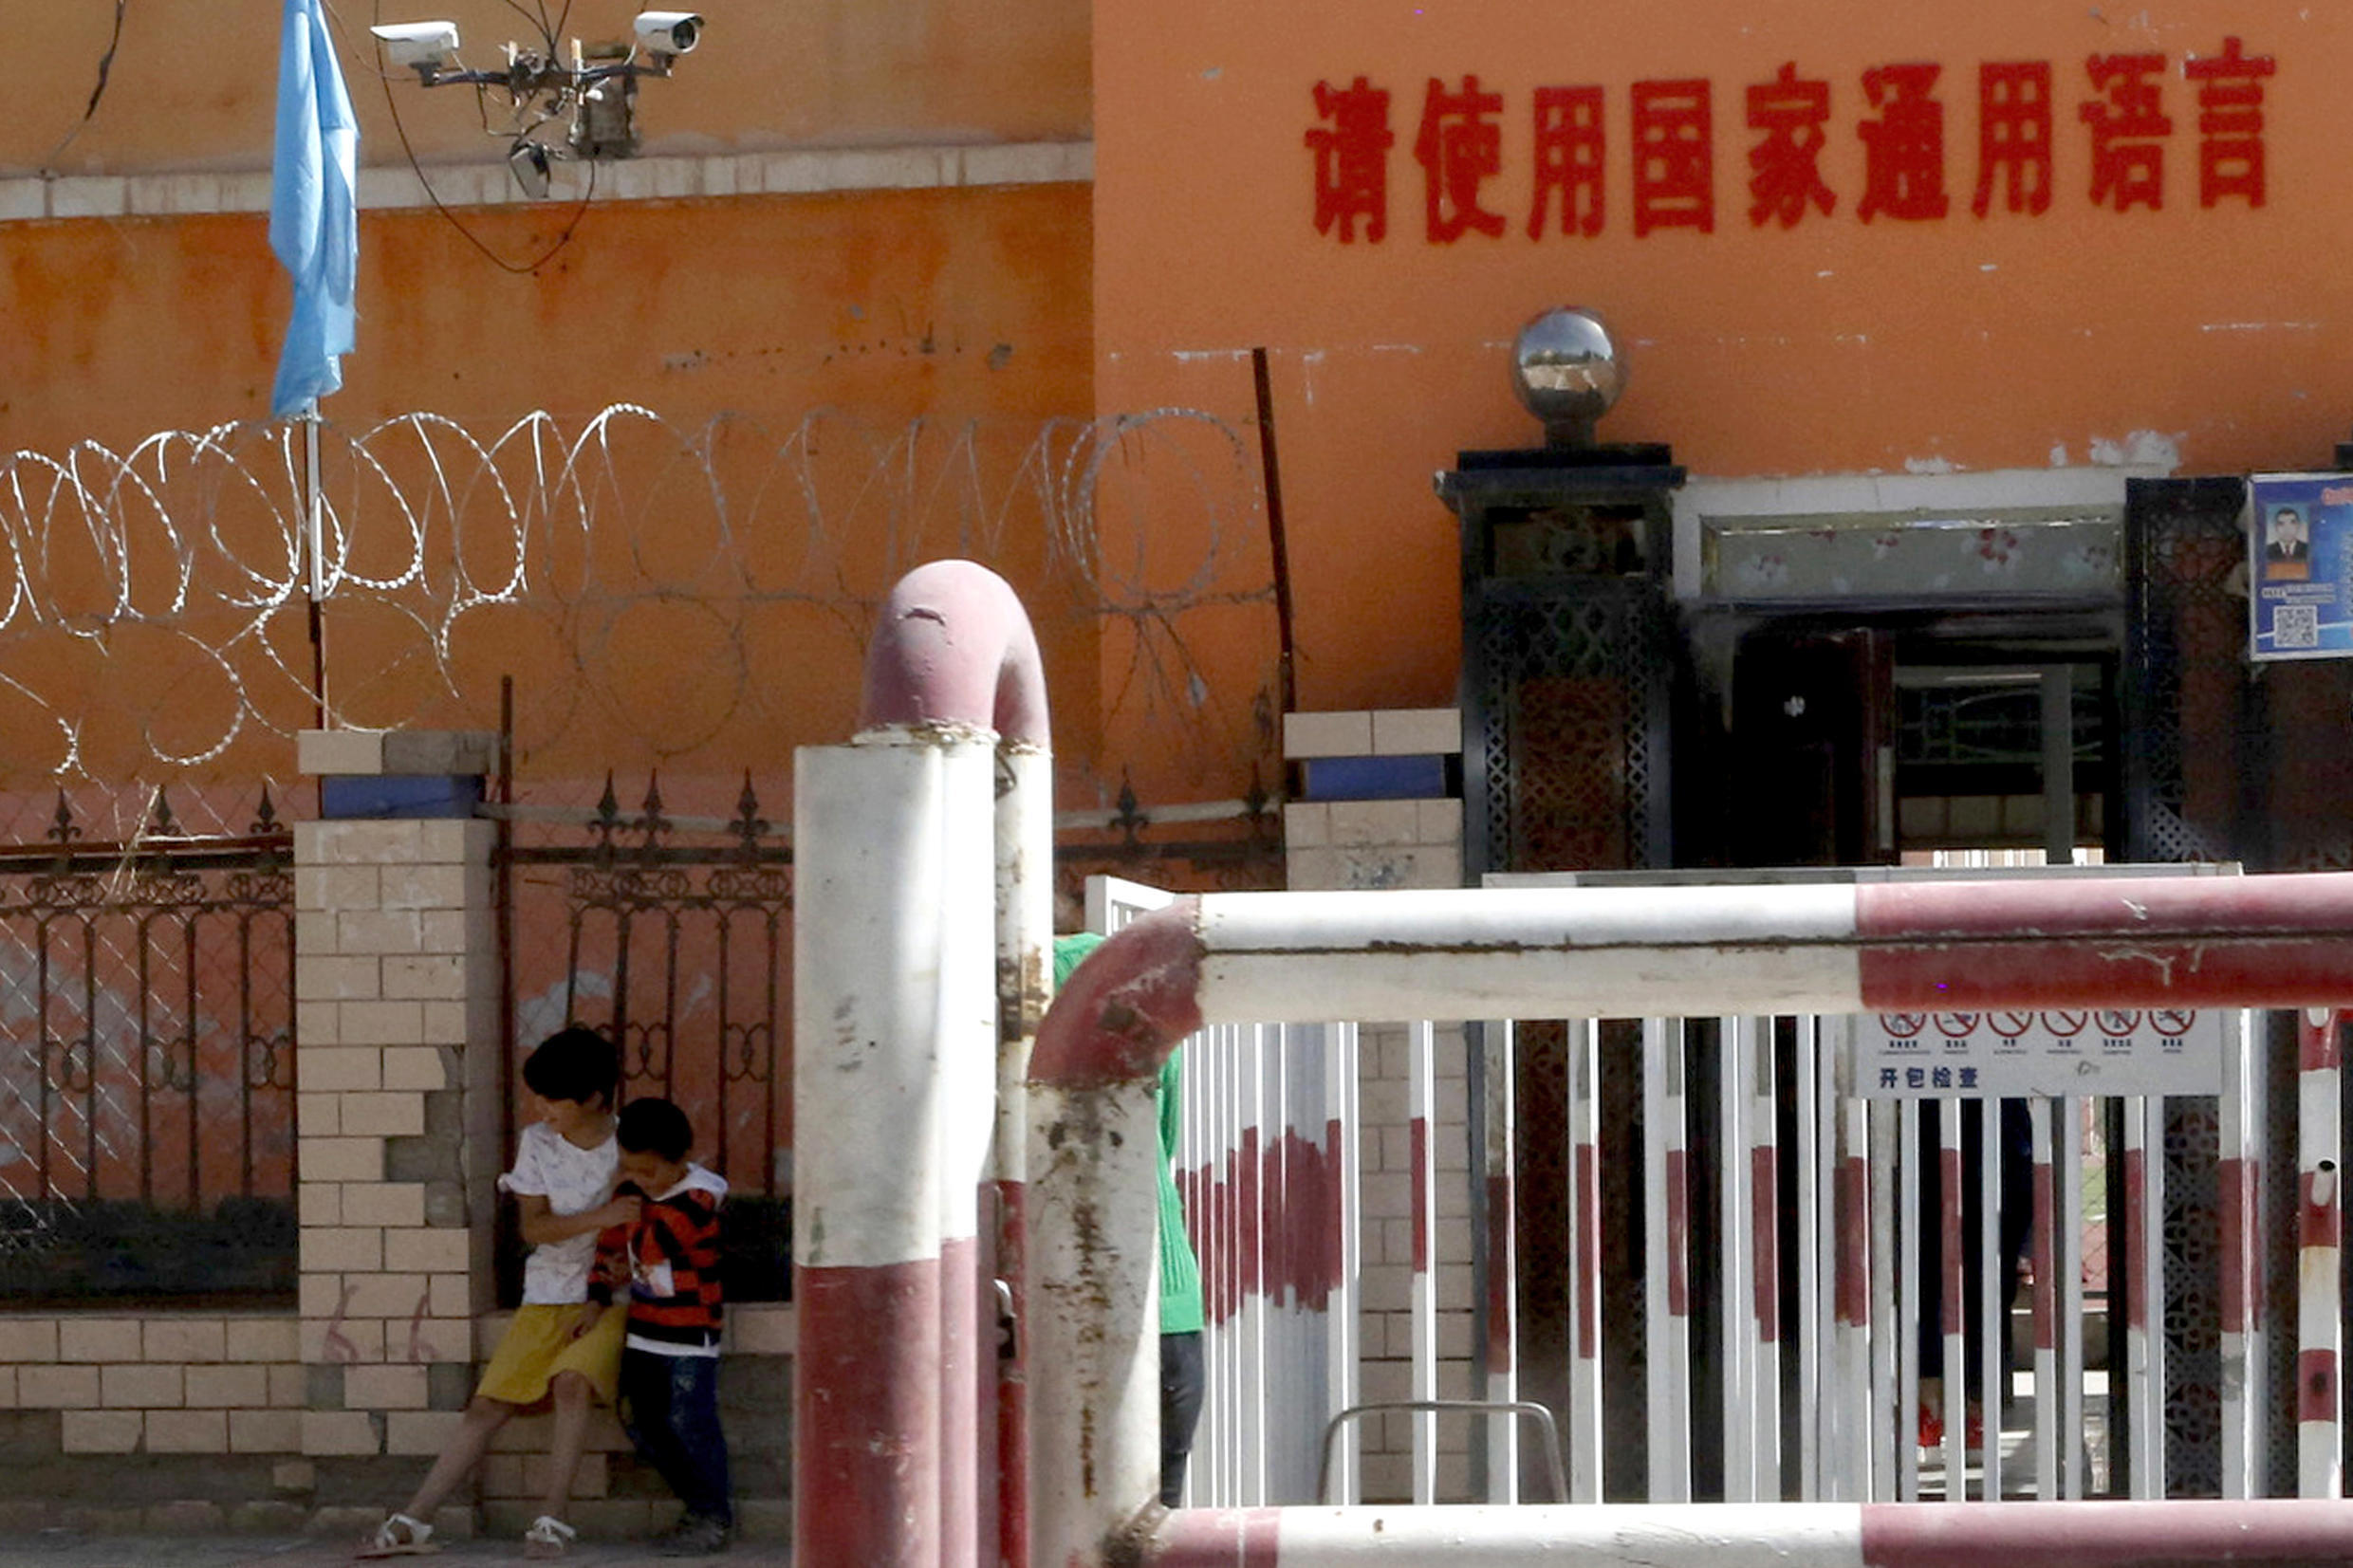 "In this Aug. 31, 2018, file photo, children play outside the entrance to a school ringed with barbed wire, barricades and surveillance cameras near a sign which reads: ""Please use the nation's common language"" indicating the use of Mandarin in Peyzawat, western China's Xinjiang region."